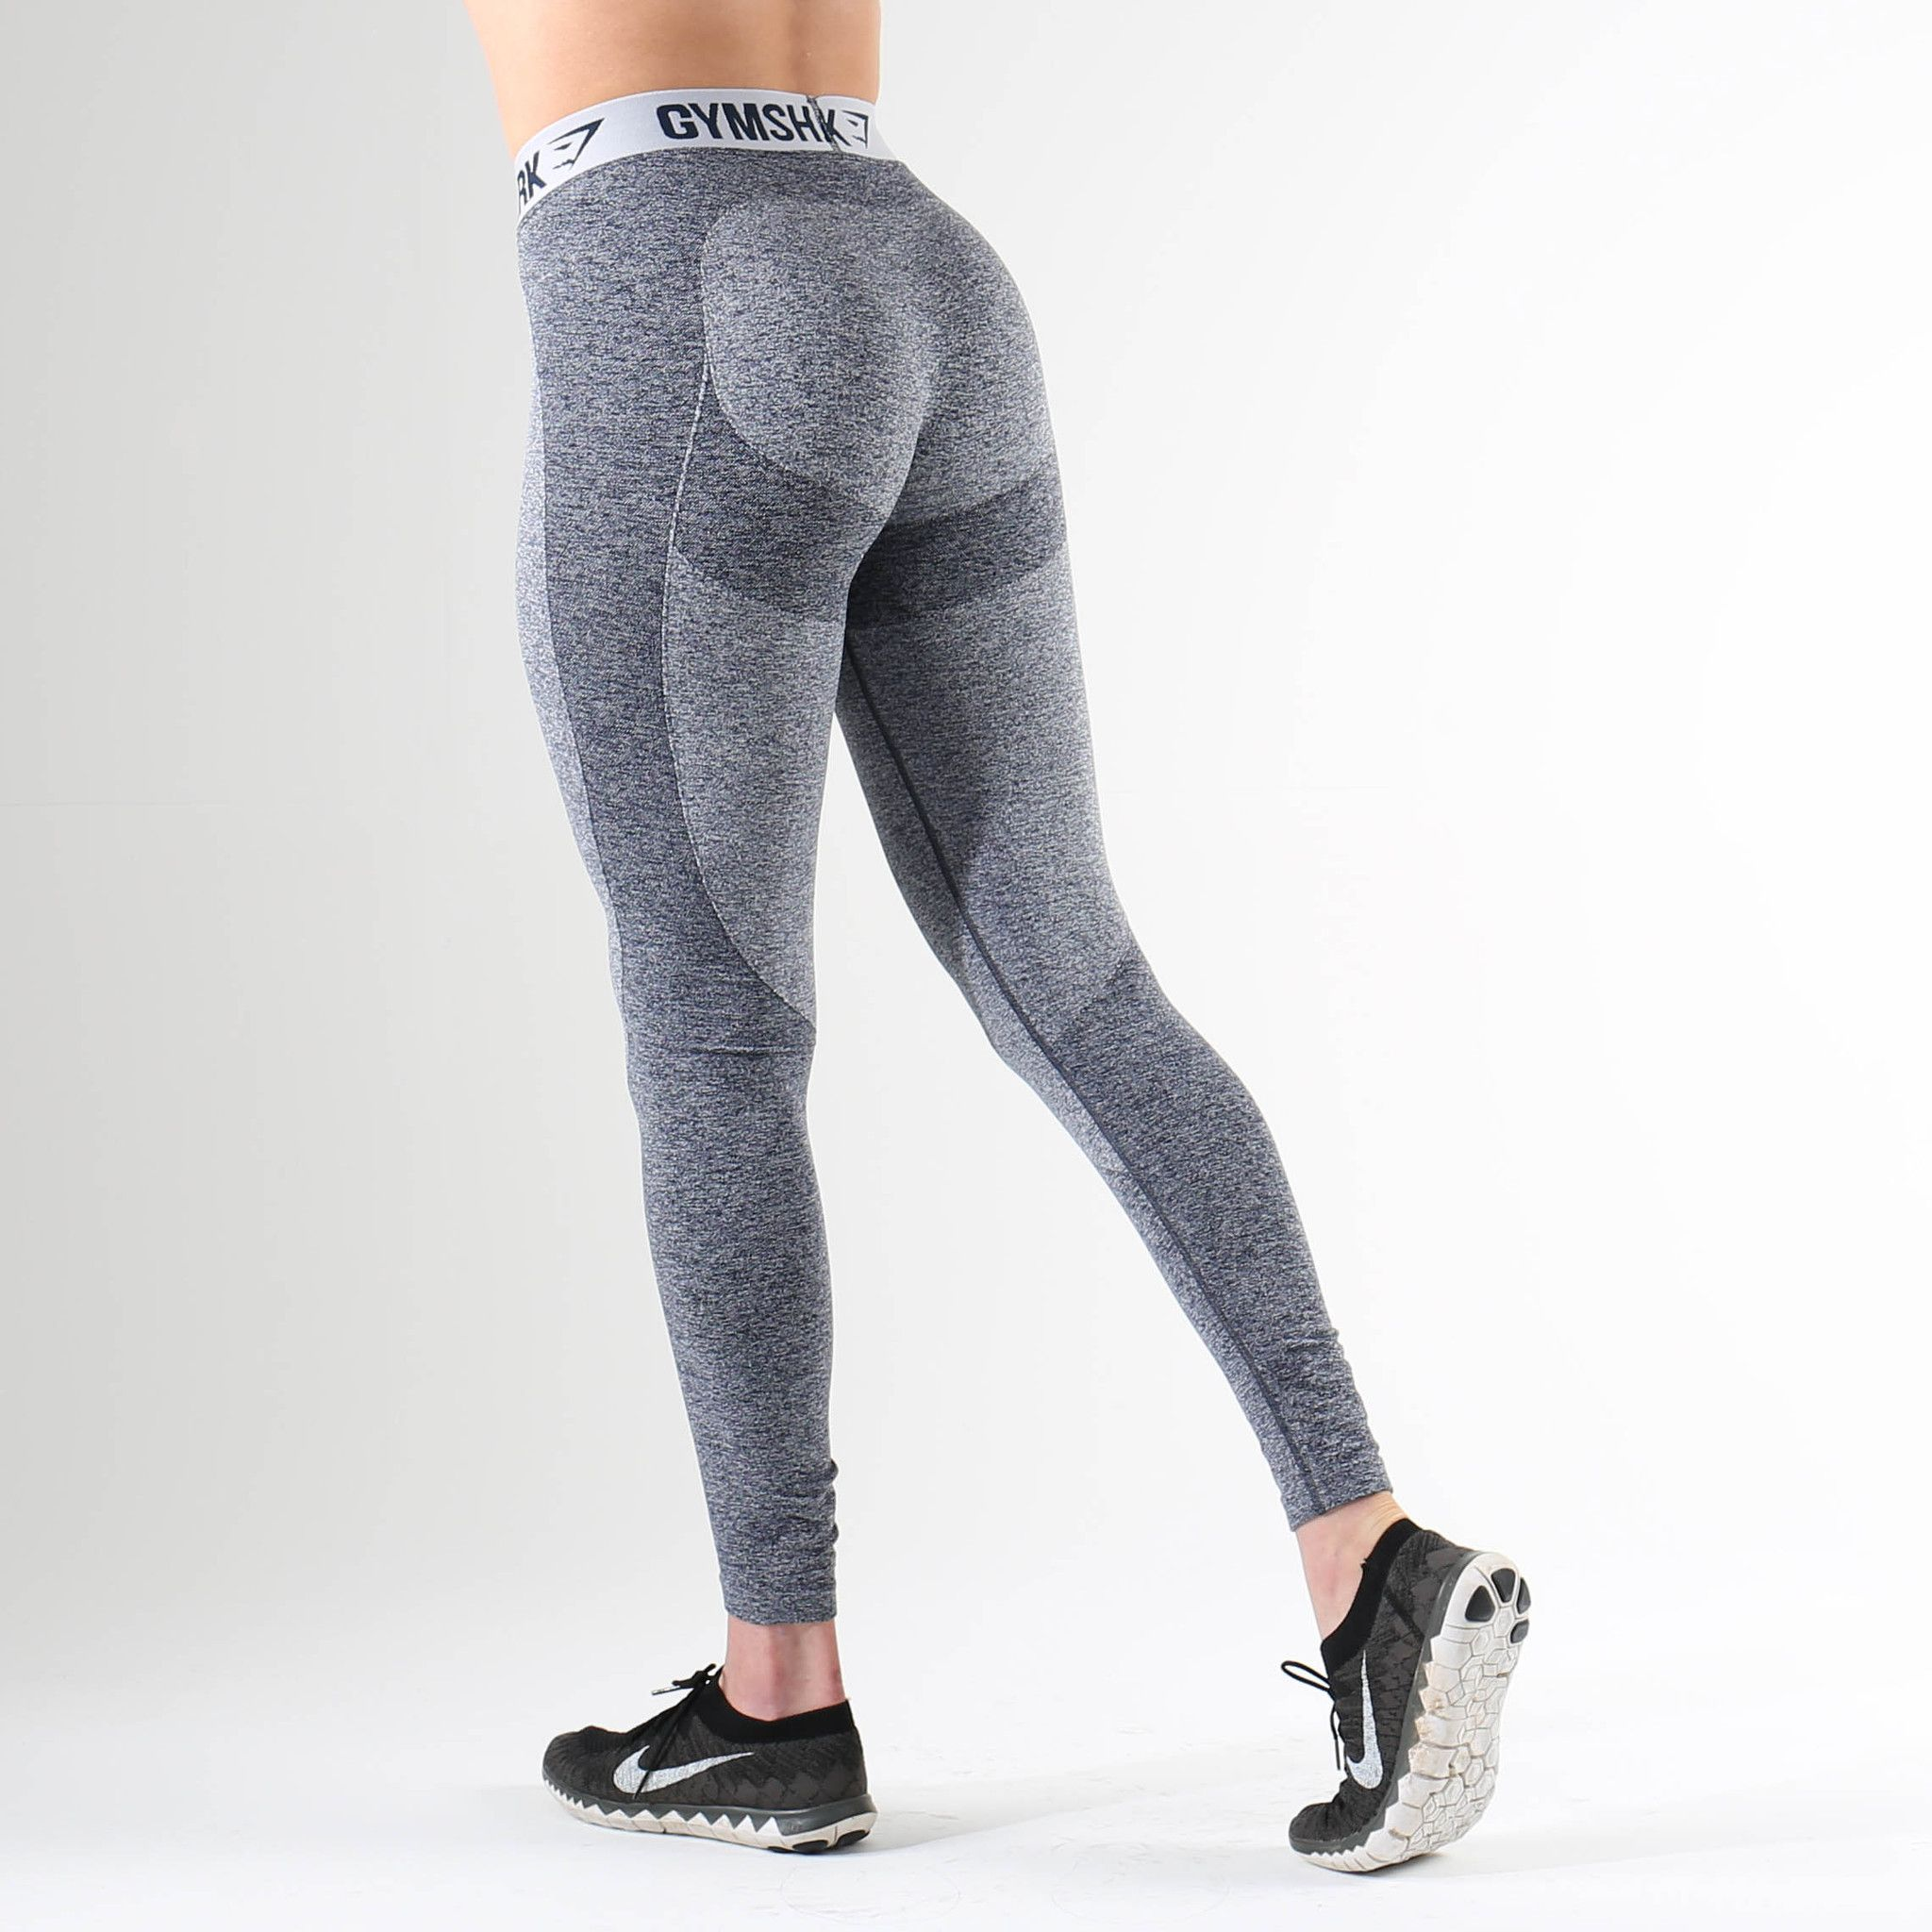 59fde73514 Gymshark Flex Leggings - Sapphire Blue Marl/Light Grey | workout ...